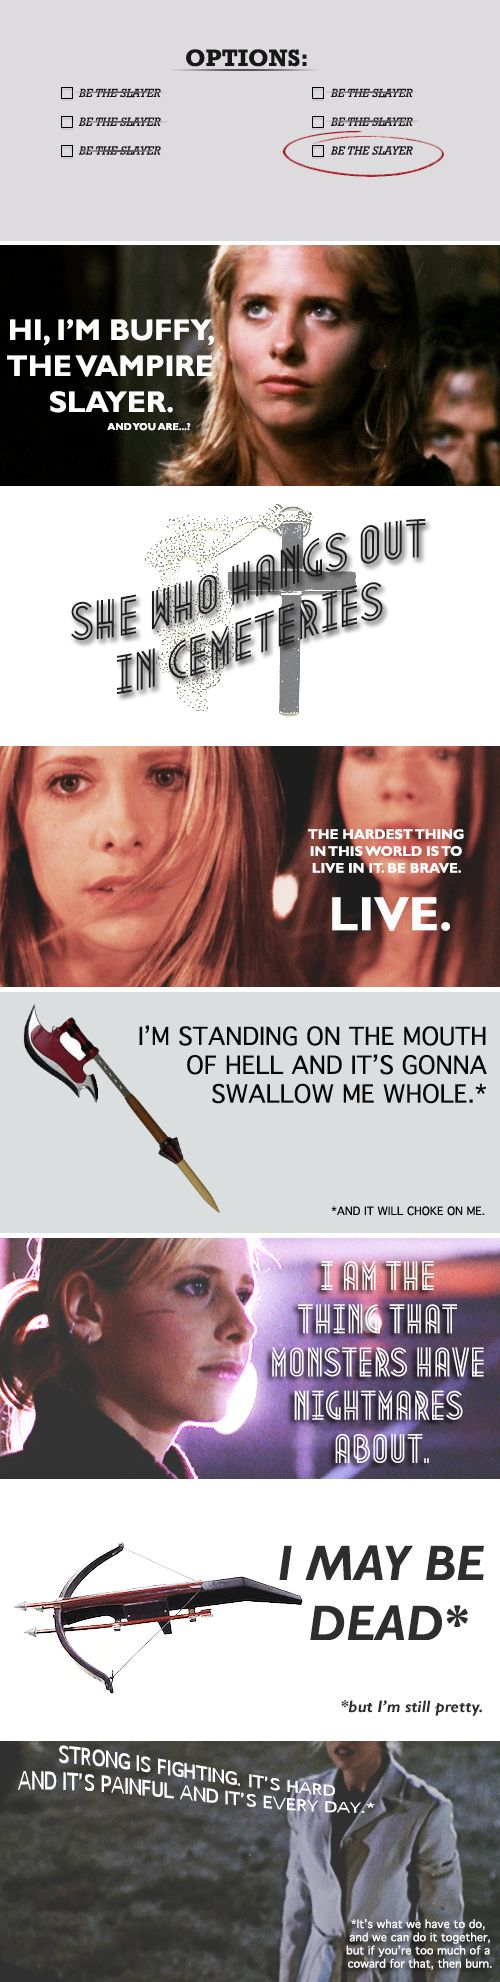 Why Buffy is an inspiration.